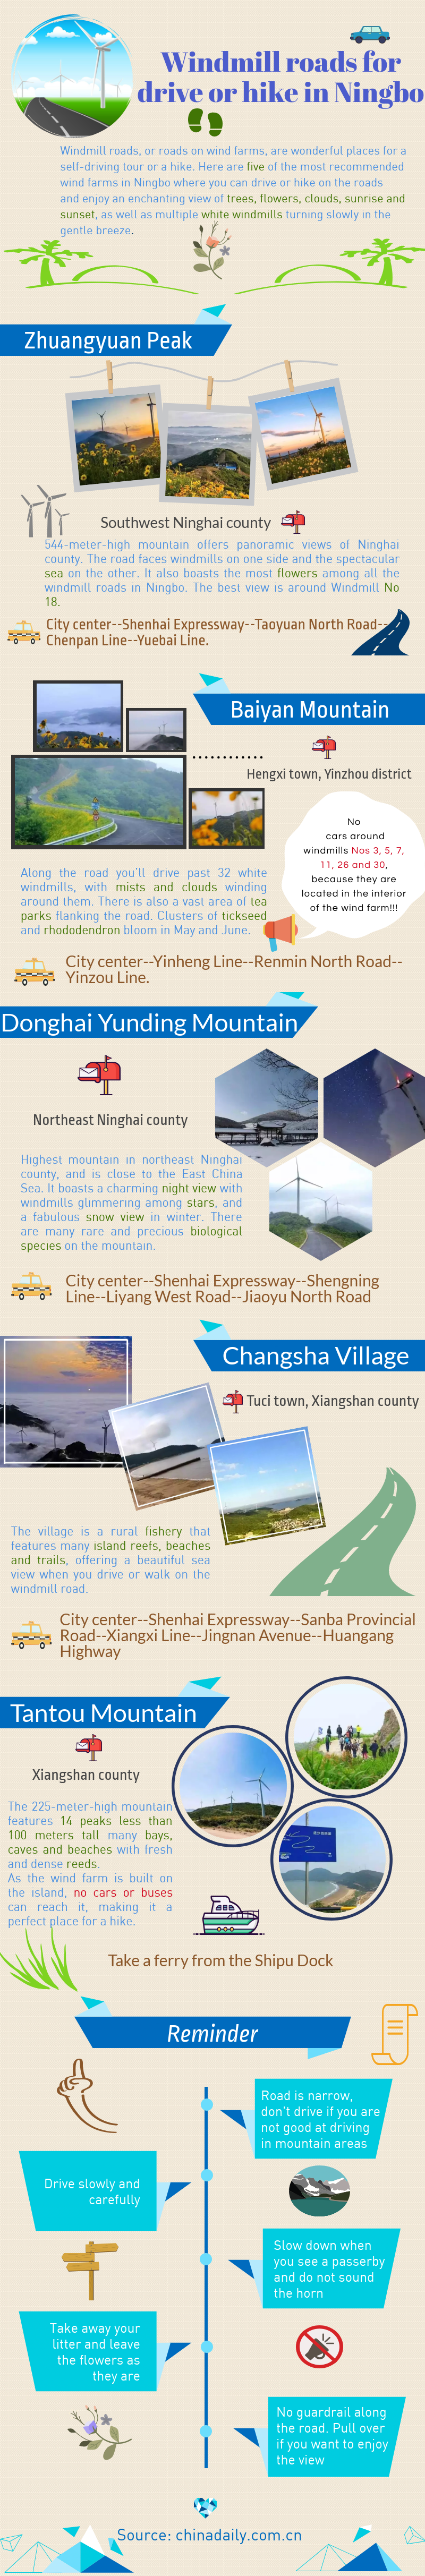 Windmill roads for drive or hike in Ningbo (1).png